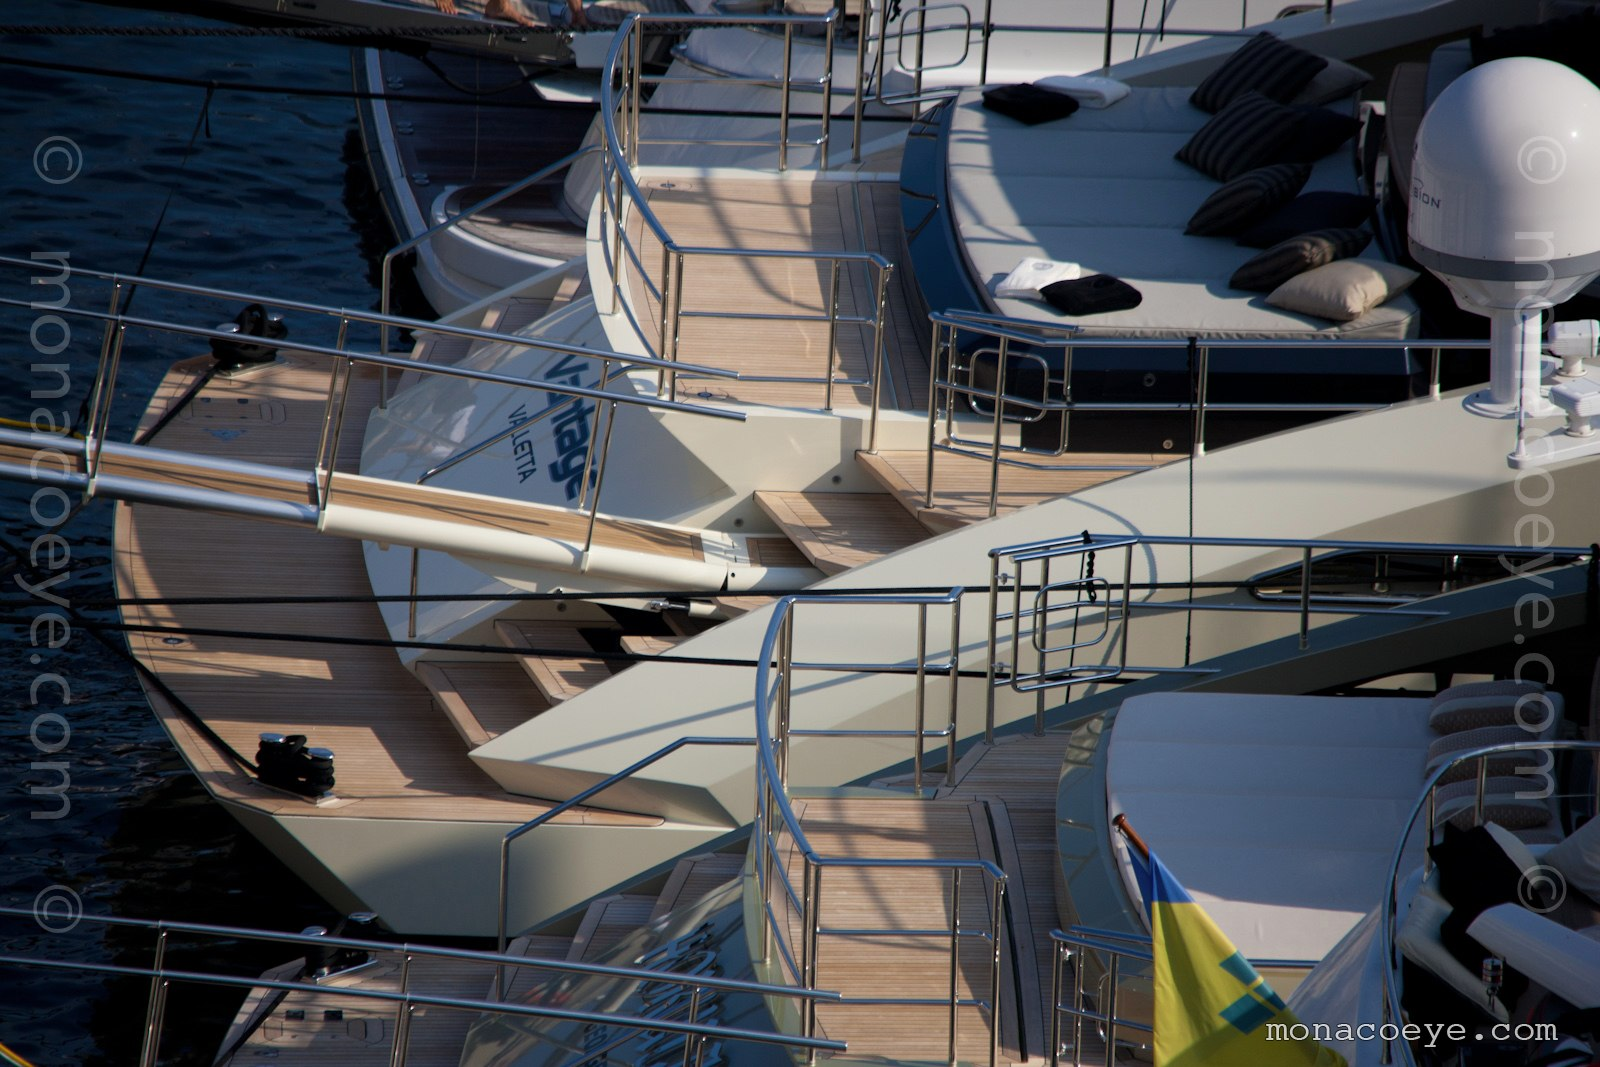 Vantage. Yacht built by Palmer and Johnson, build number 248, 2010, 46 metres. 7th in the 150 ft series, designed by Nuvolari and Lenard.